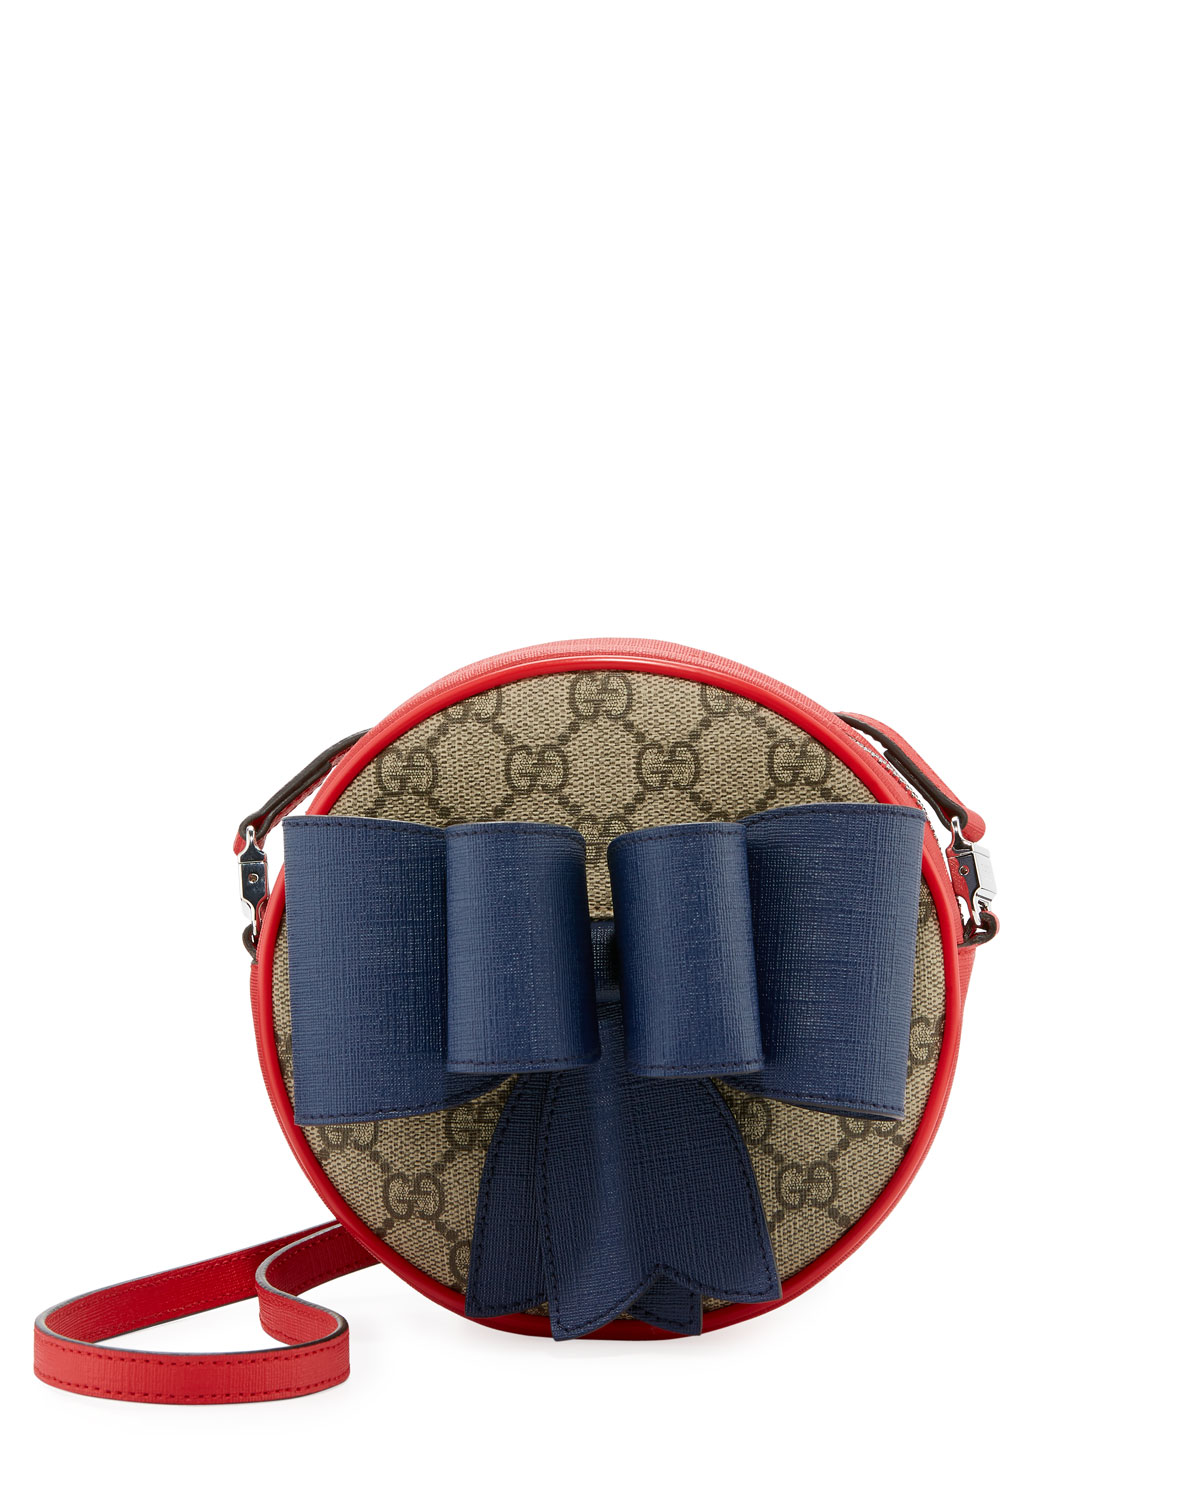 10a26914b8e Gucci Kids  GG Supreme Canvas Crossbody Bag w  Bow Detail